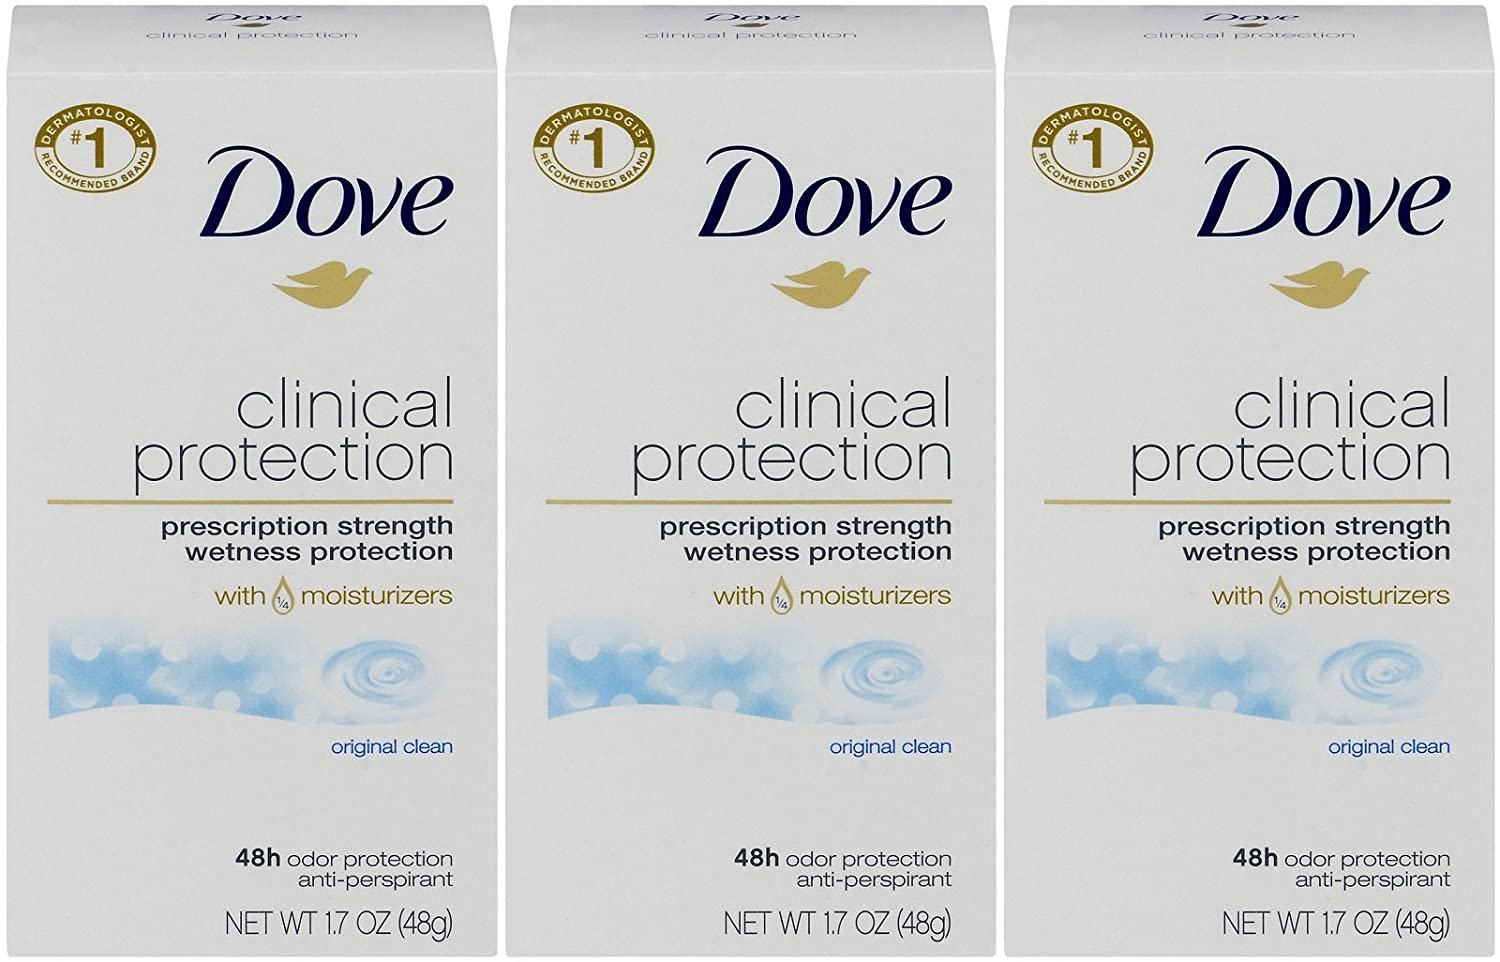 Dove Clinical Protection Antiperspirant Deodorant, Original Clean, 1.7 Oz, Pack of 3